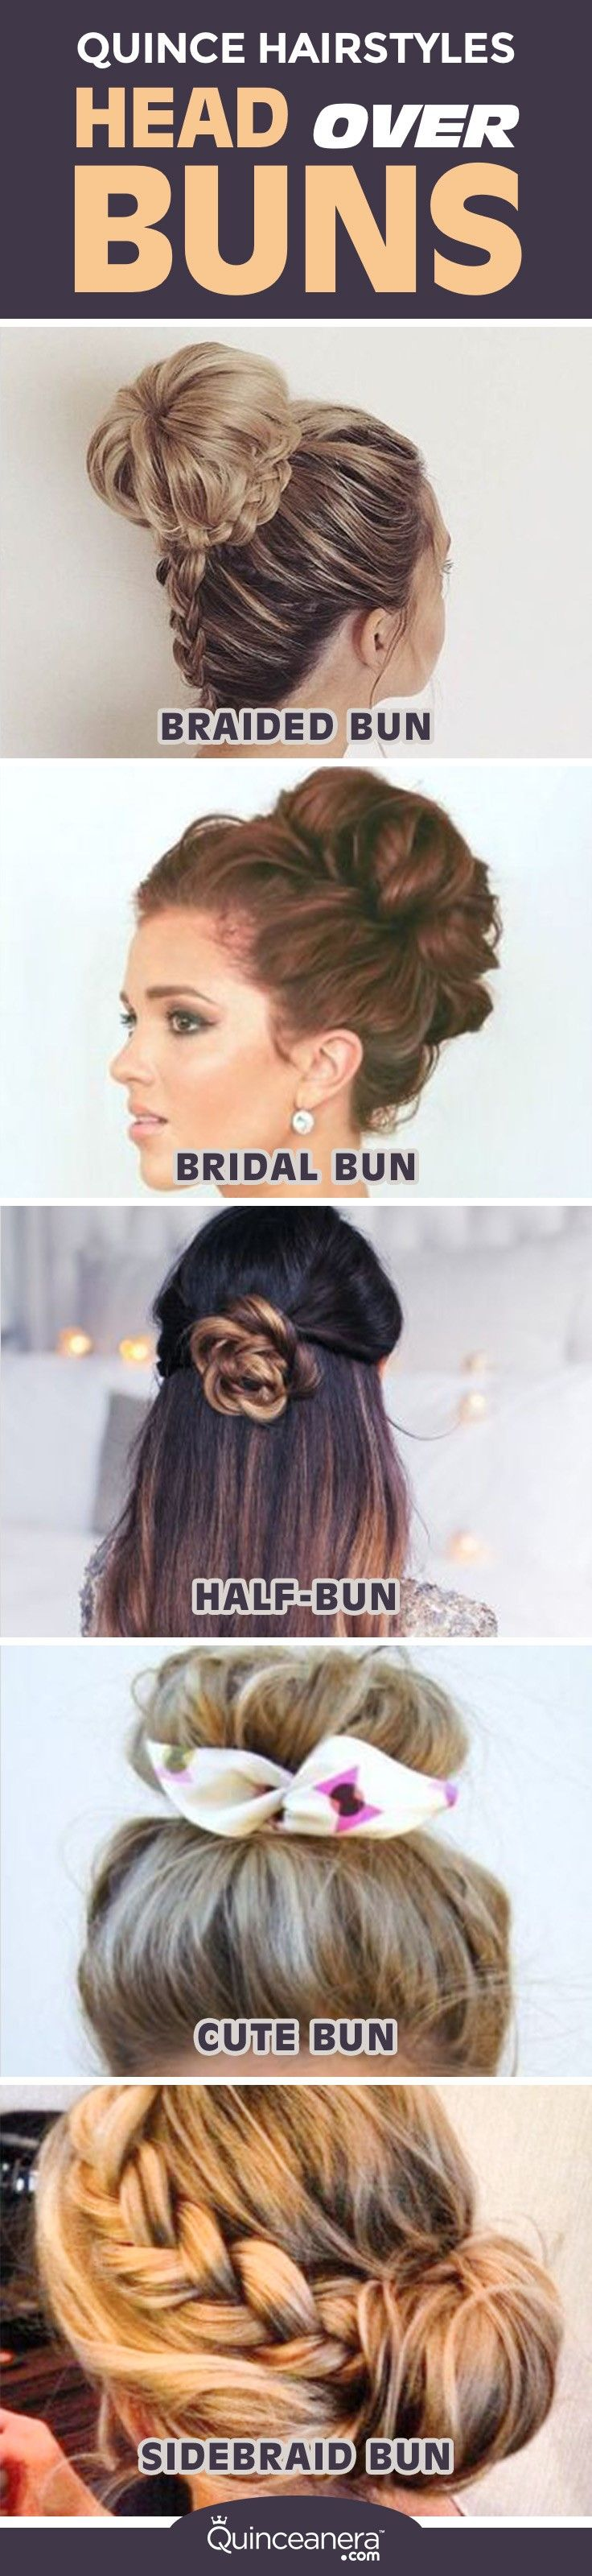 Hairstyles head over buns s court pinterest hair style